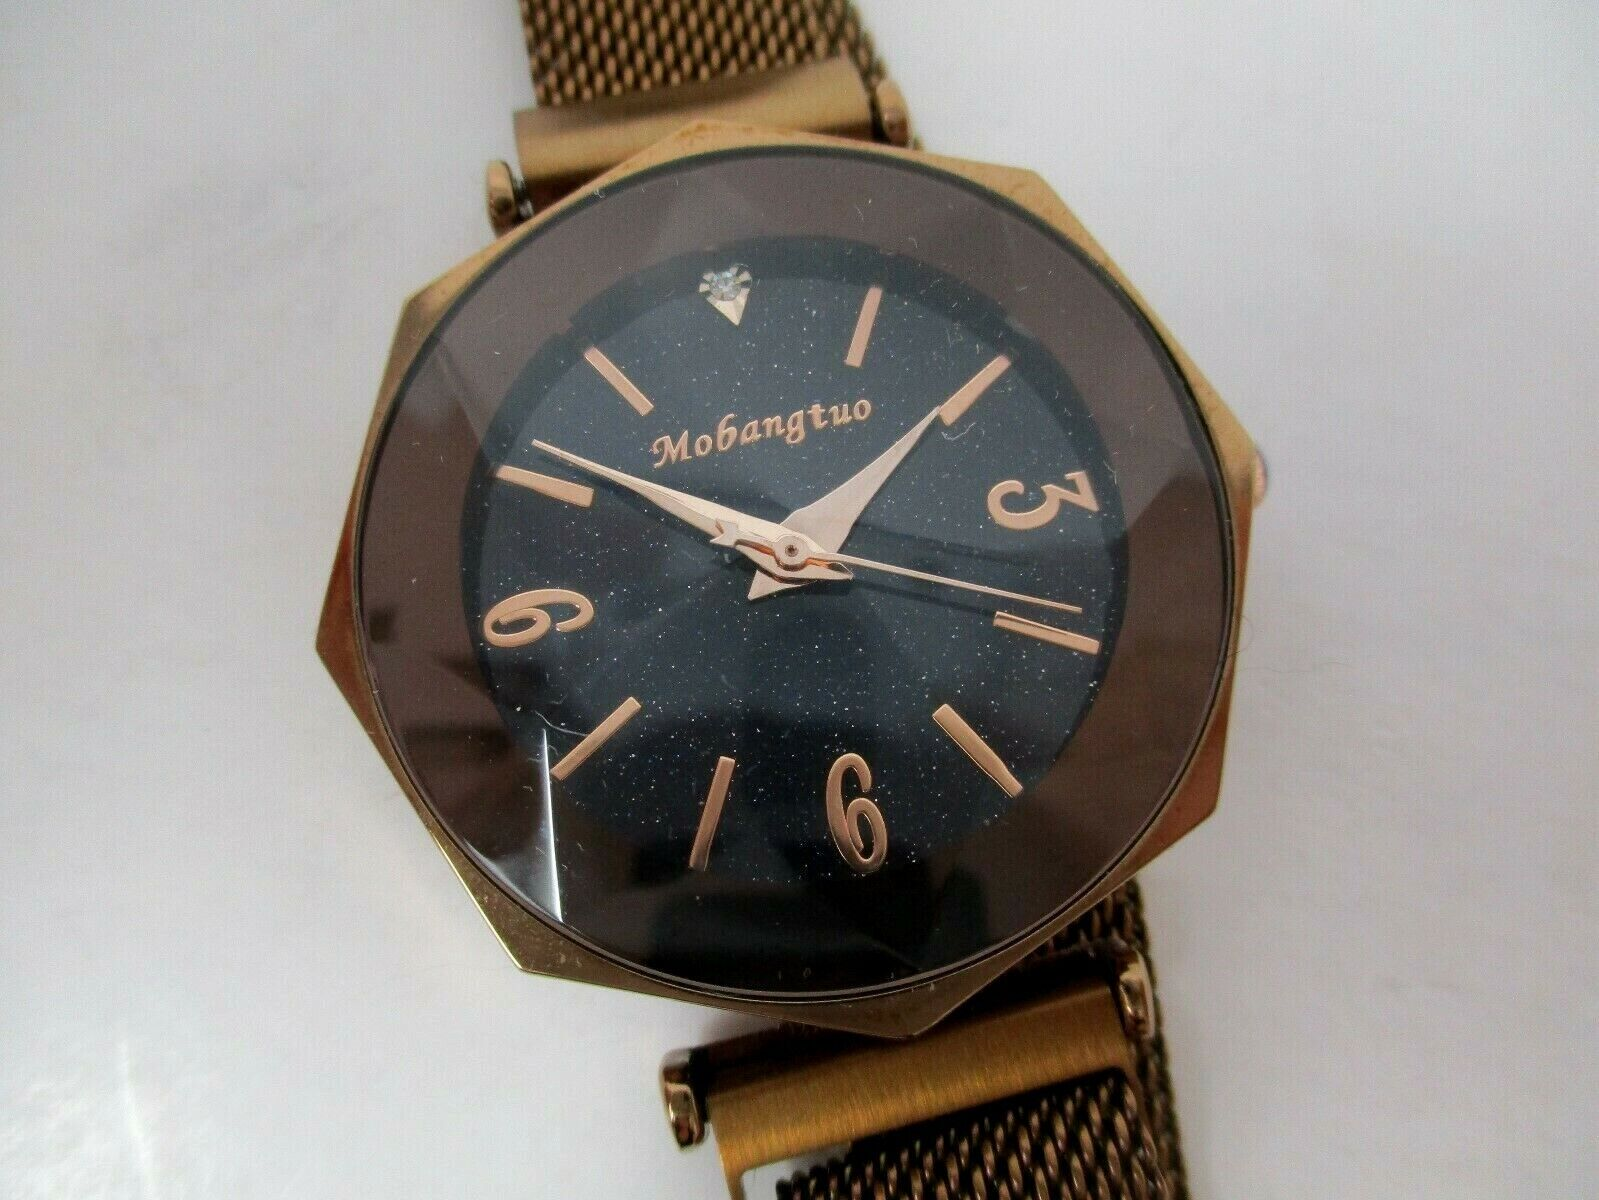 Mobangtuo Women's Starry Sky Bronze Watch With Magnetic Band